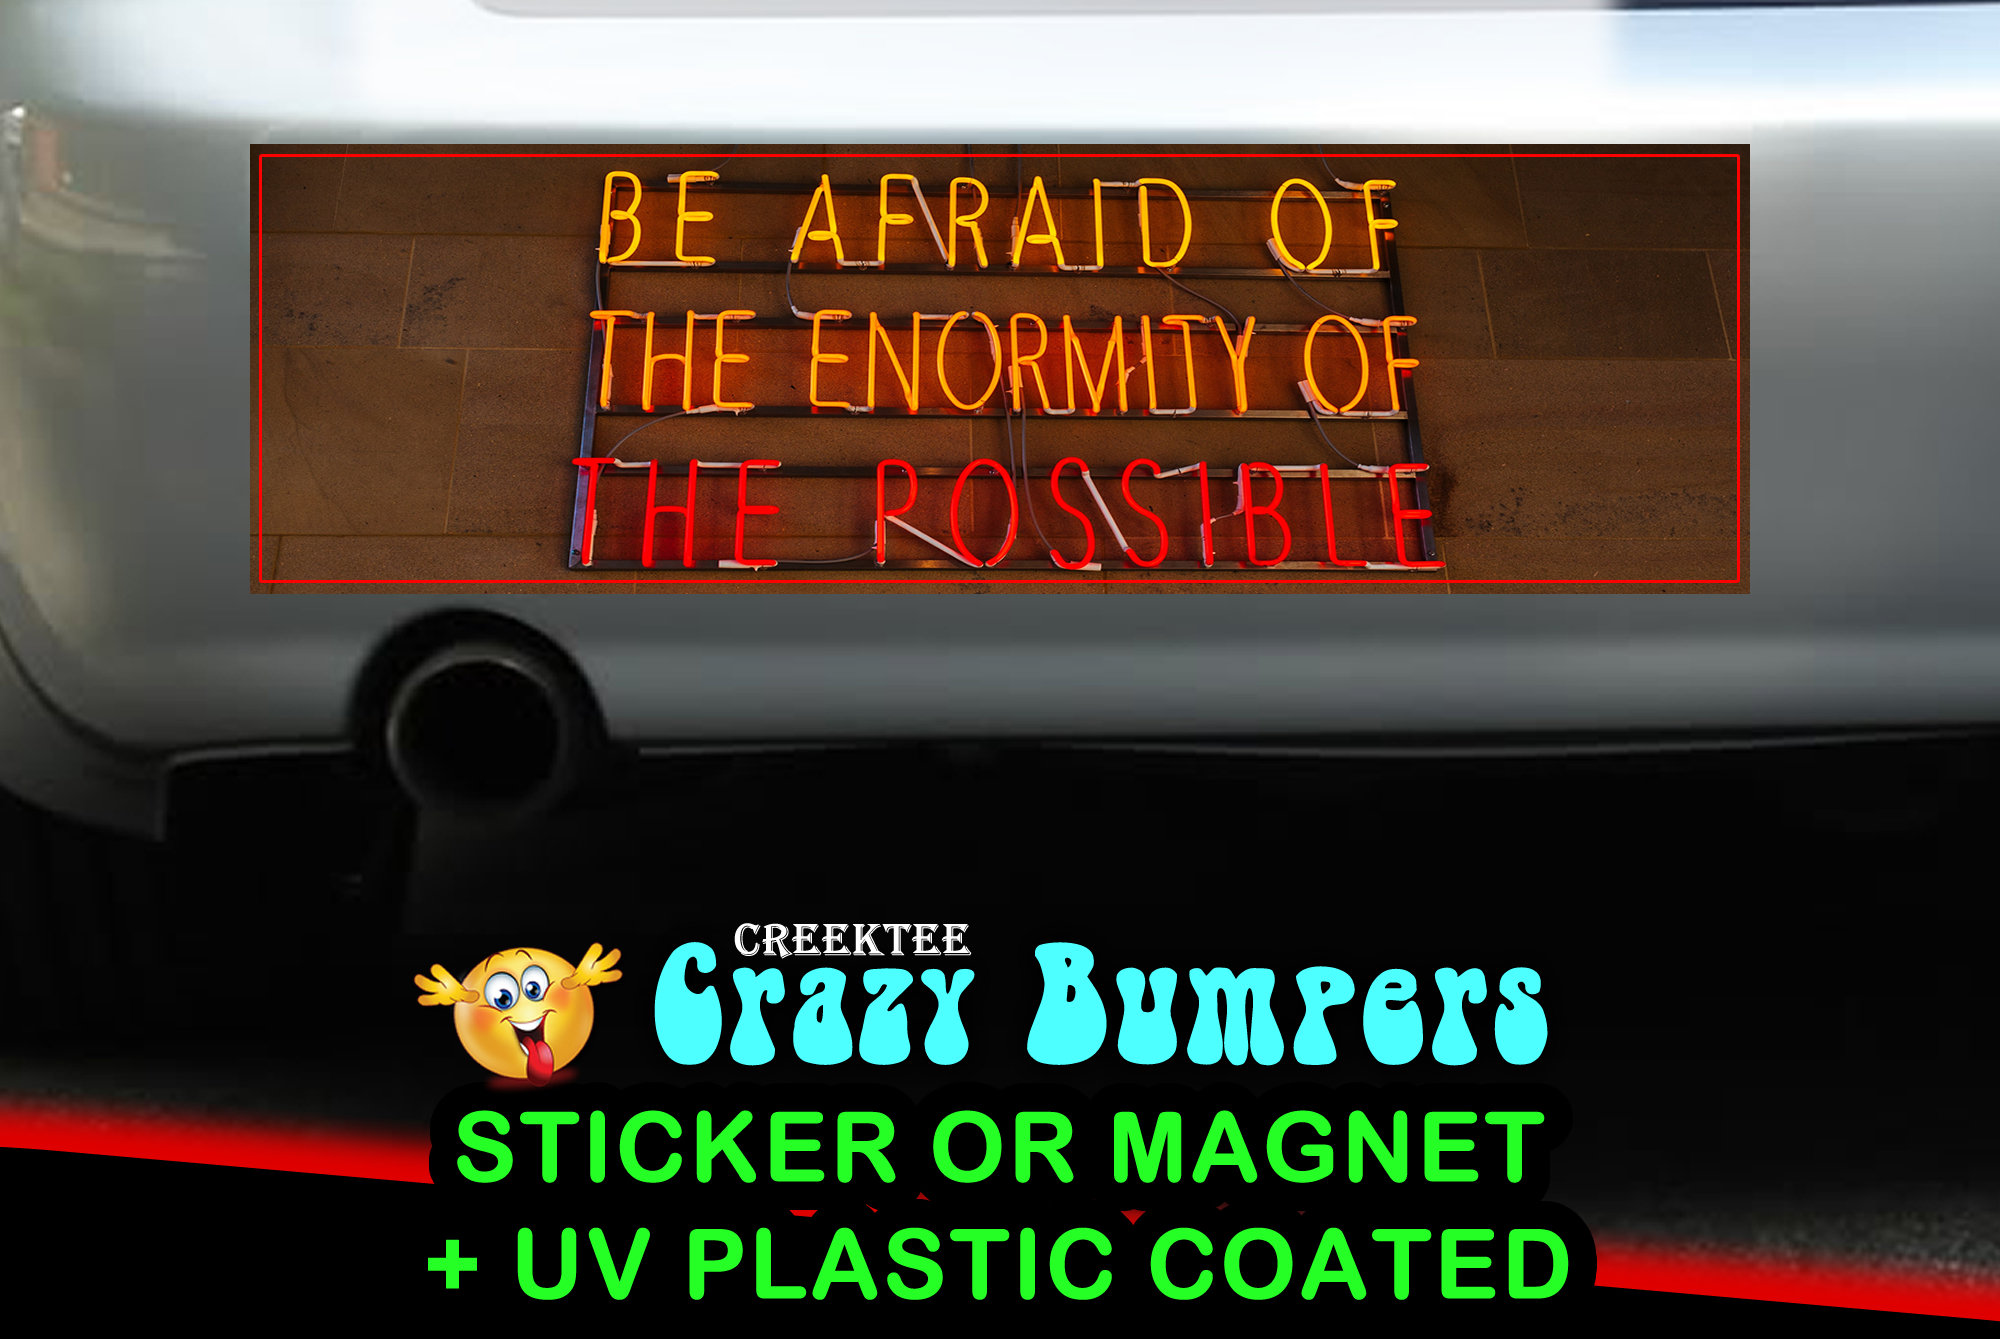 CAD$9.99 - Be Afraid Of The Enormity Of The Possible 10 x 3 Bumper Sticker or Magnet - Custom changes and orders welcomed!